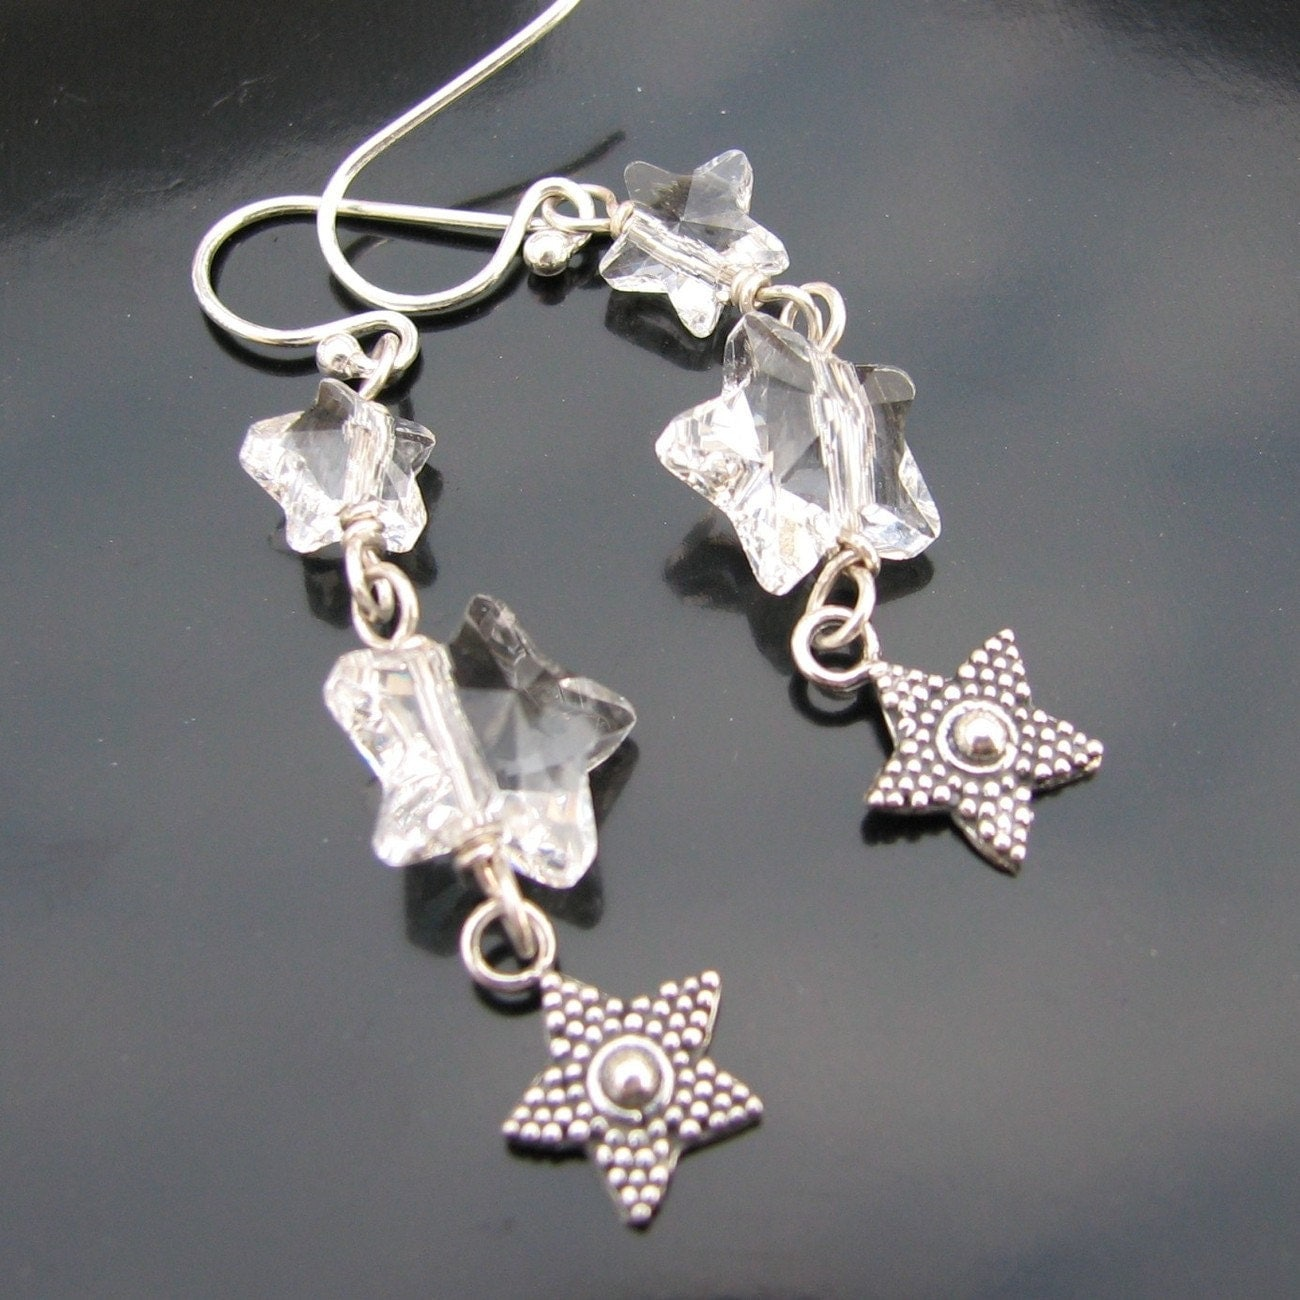 Fallings Stars crystal and sterling earrings